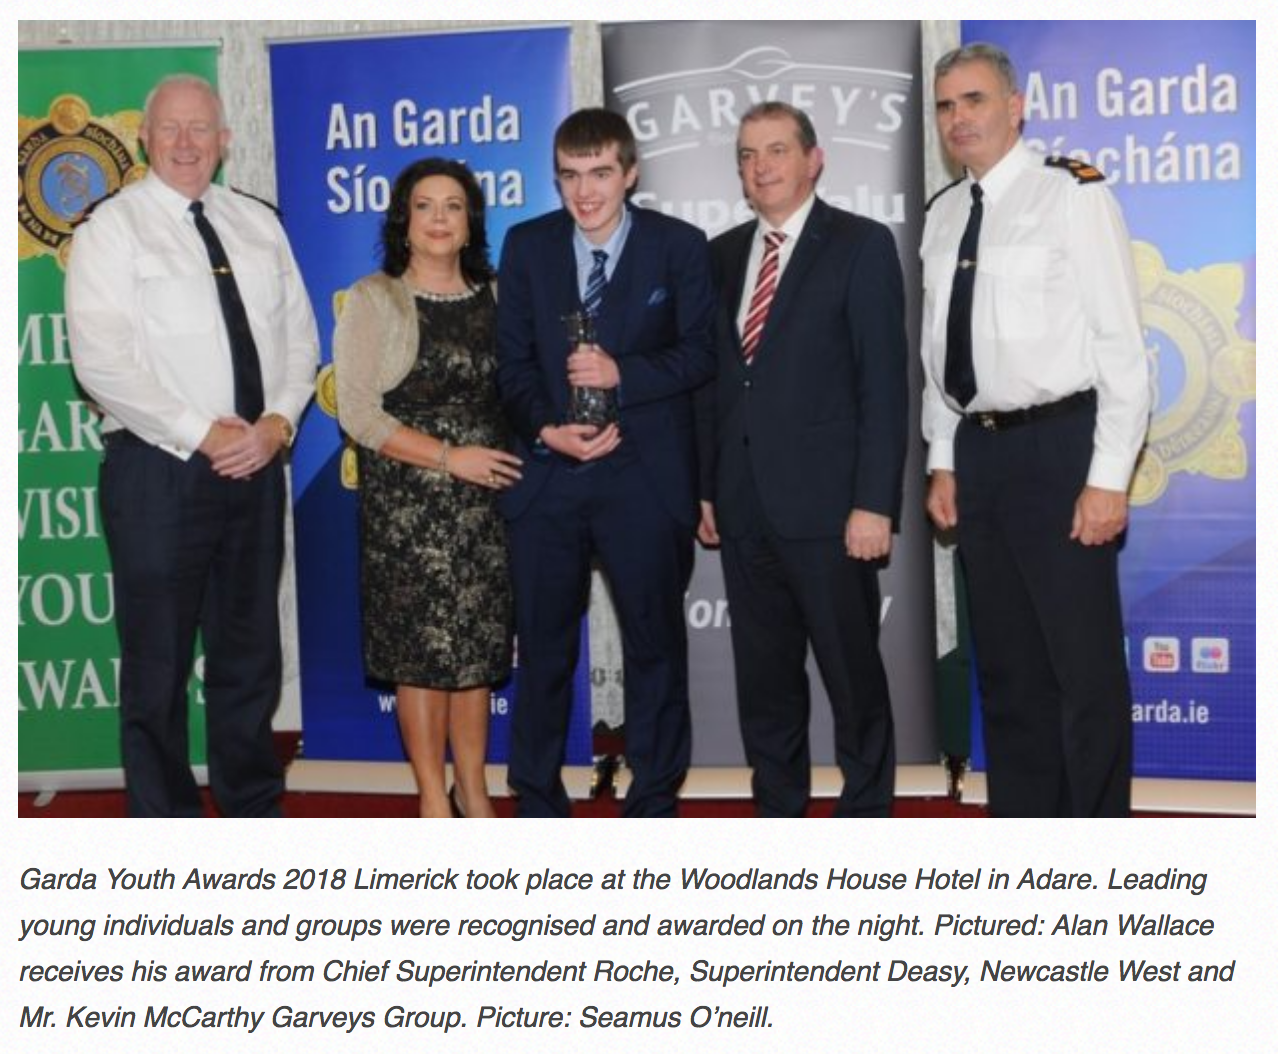 Dec 2018: Alan Wallace receives his award from Chief Superintendent Roche, Superintendent Deasy, Newcastle West and Mr. Kevin McCarthy Garveys Group. Picture: Seamus O'neill.